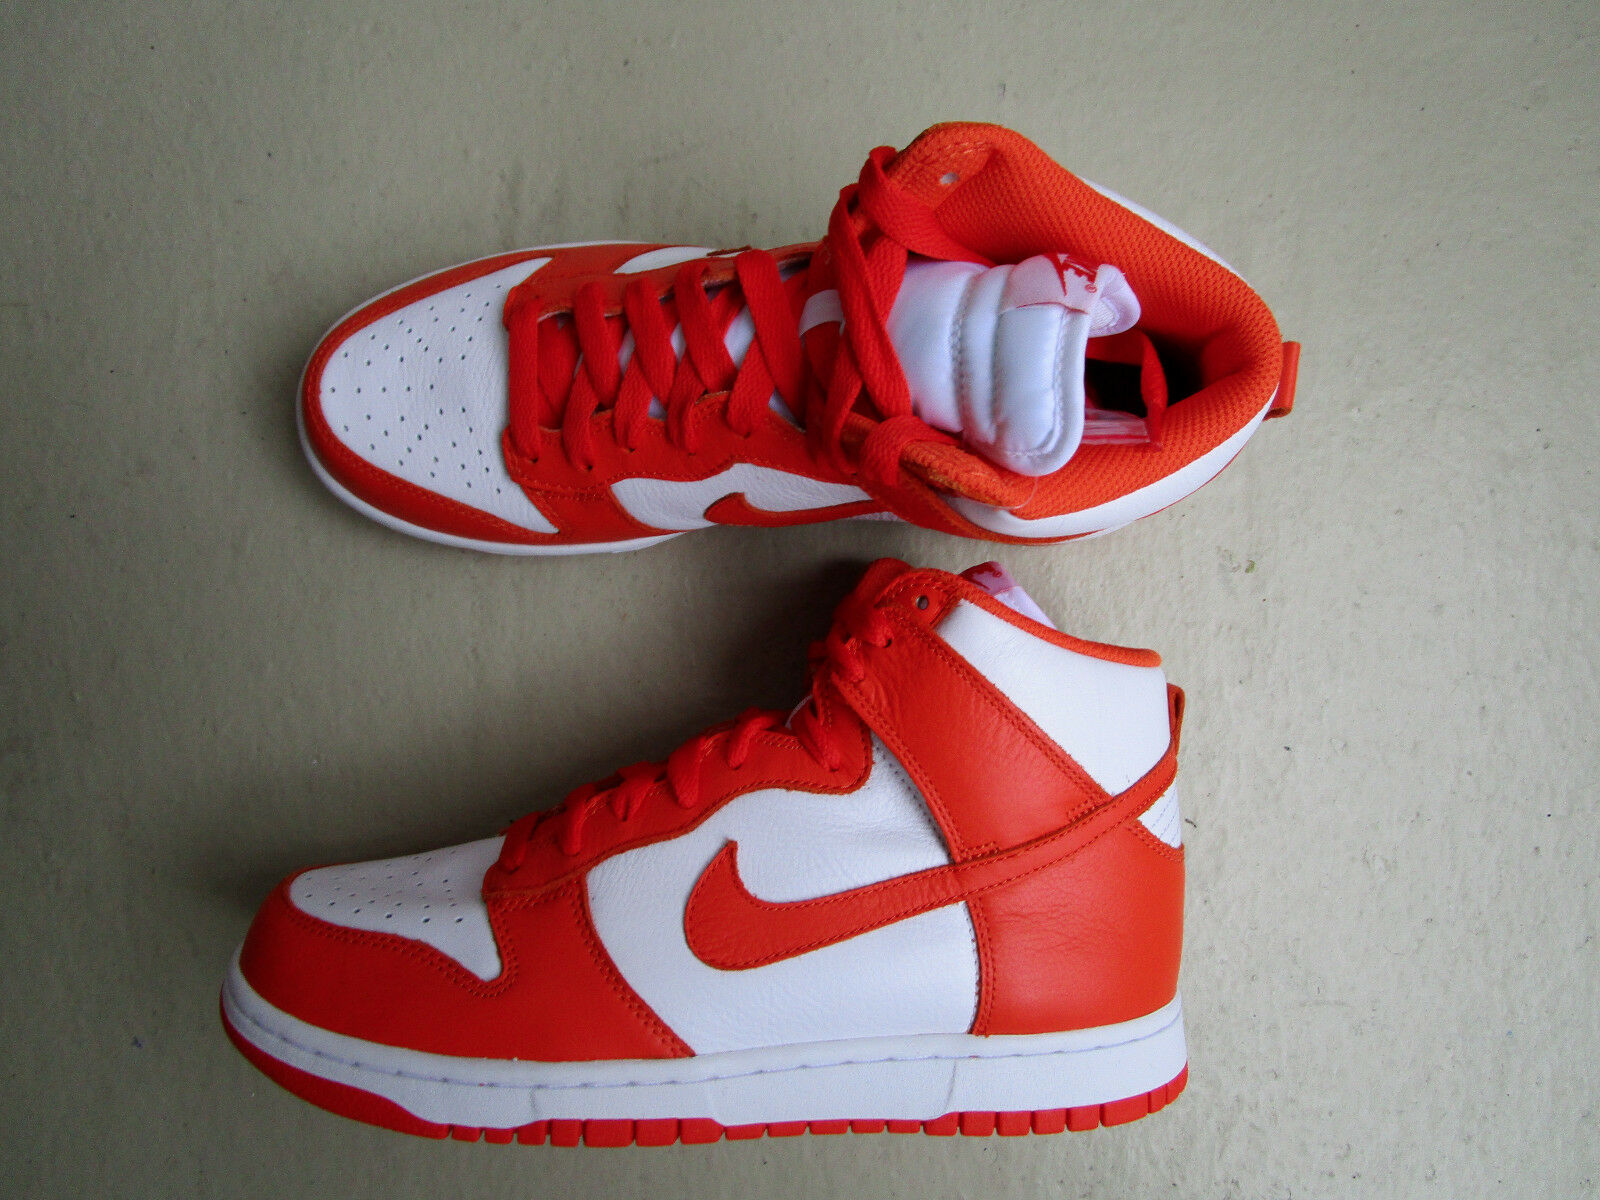 Nike Air Dunk High Retro QS 44 White orange Blaze